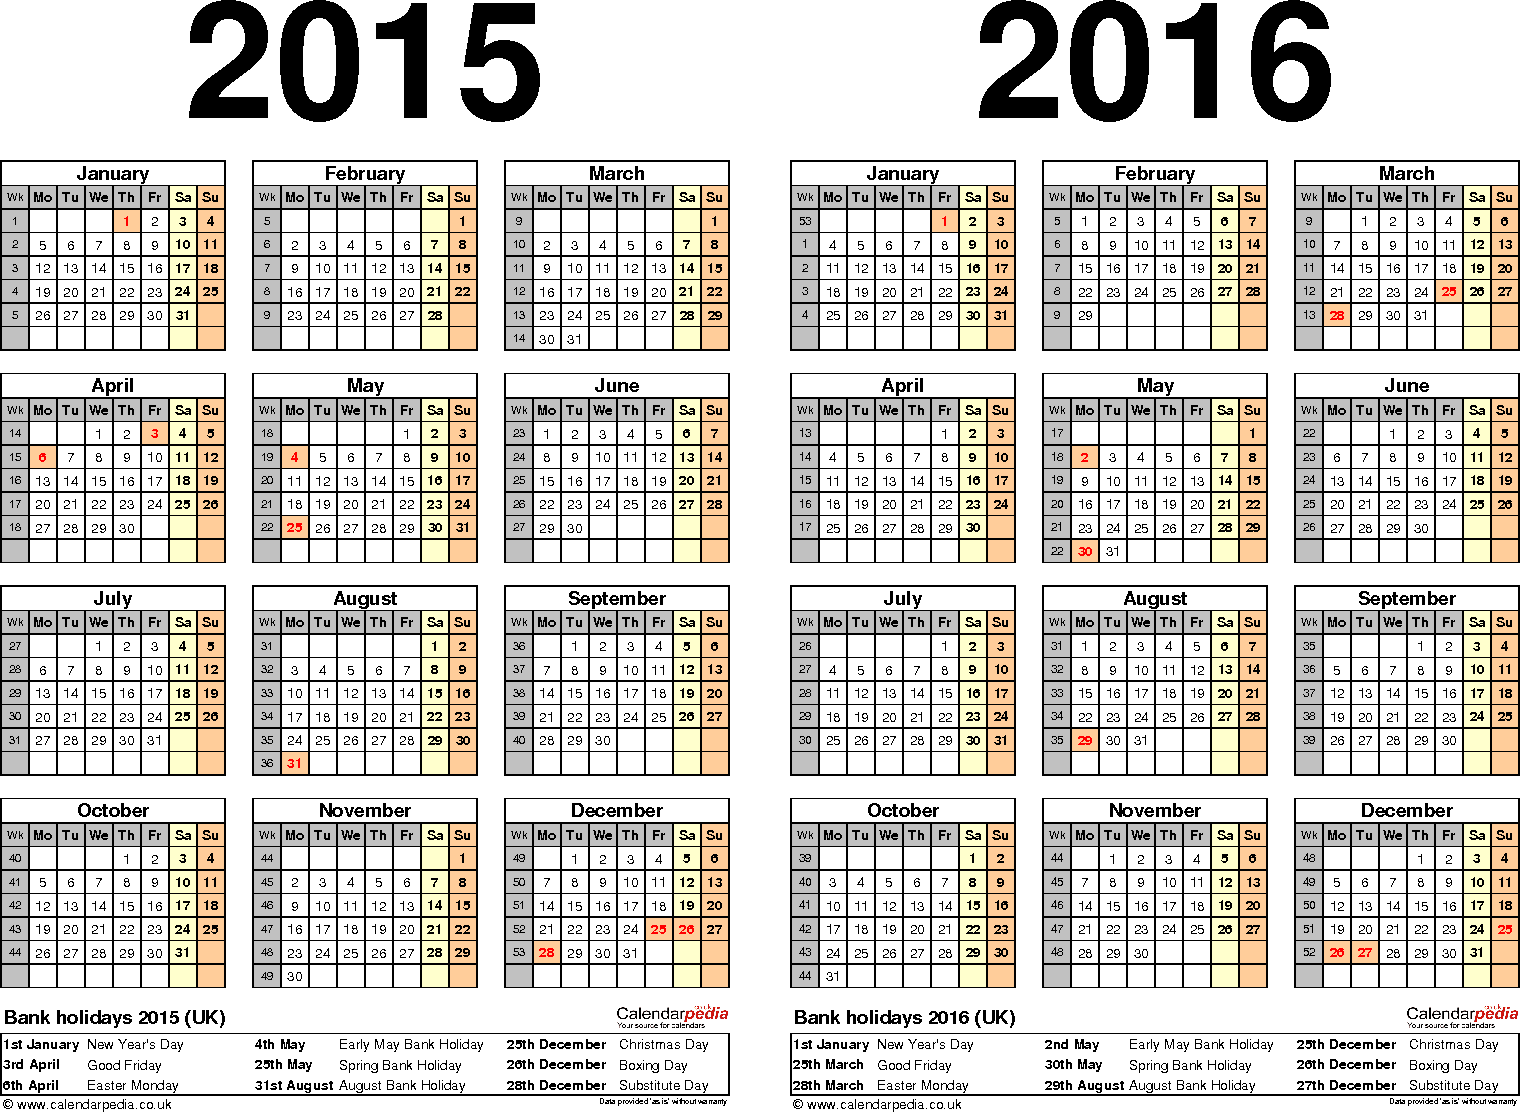 Template 2: Word template for two year calendar 2015/2016 (landscape orientation, 1 page, A4)